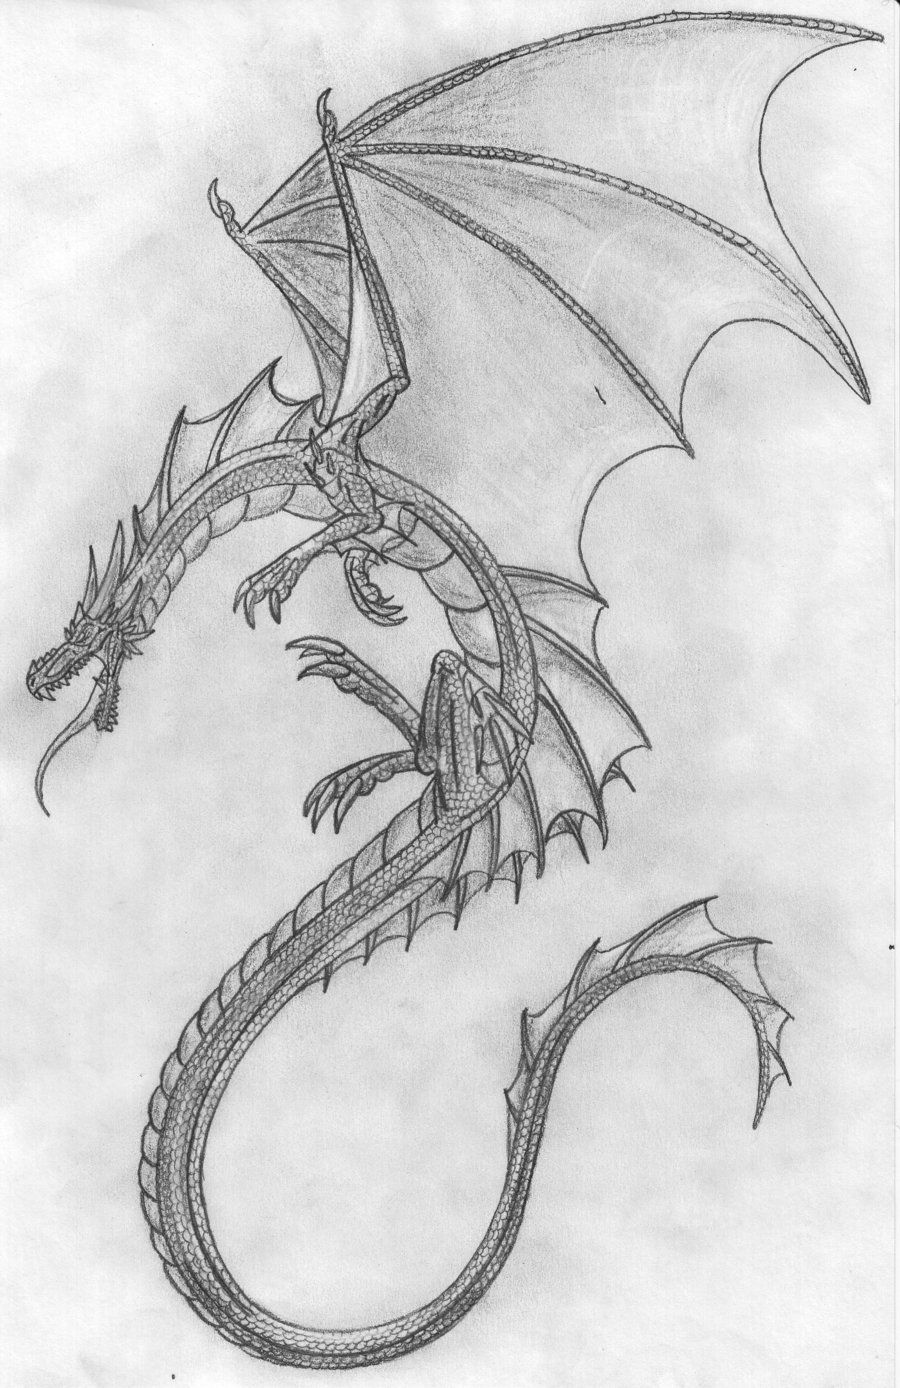 Pencil drawings pencil dragon by scatha the worm traditional art drawings fantasy 2010